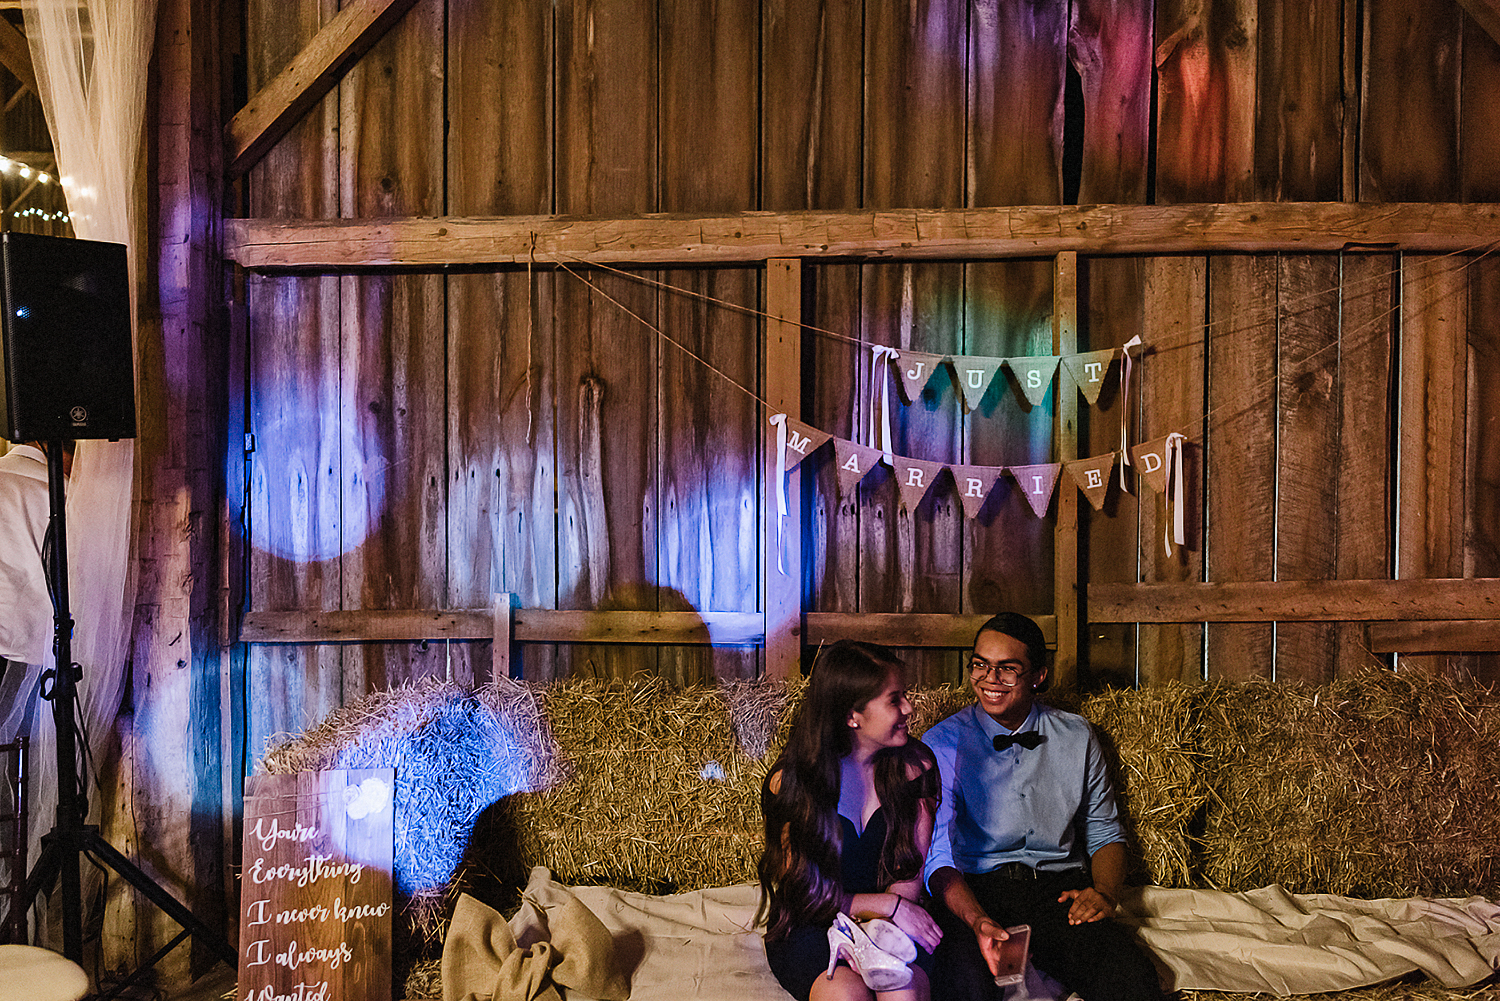 Best-Wedding-Photographers-Toronto-with-Documentary-and-photojournalistic-style-3b-Photography-Intimate-Wedding-at-Dowswell-Barn-Wedding-Photography-bride-and-groom-dancing-together-candid-emotional-guests-candid-fun.jpg